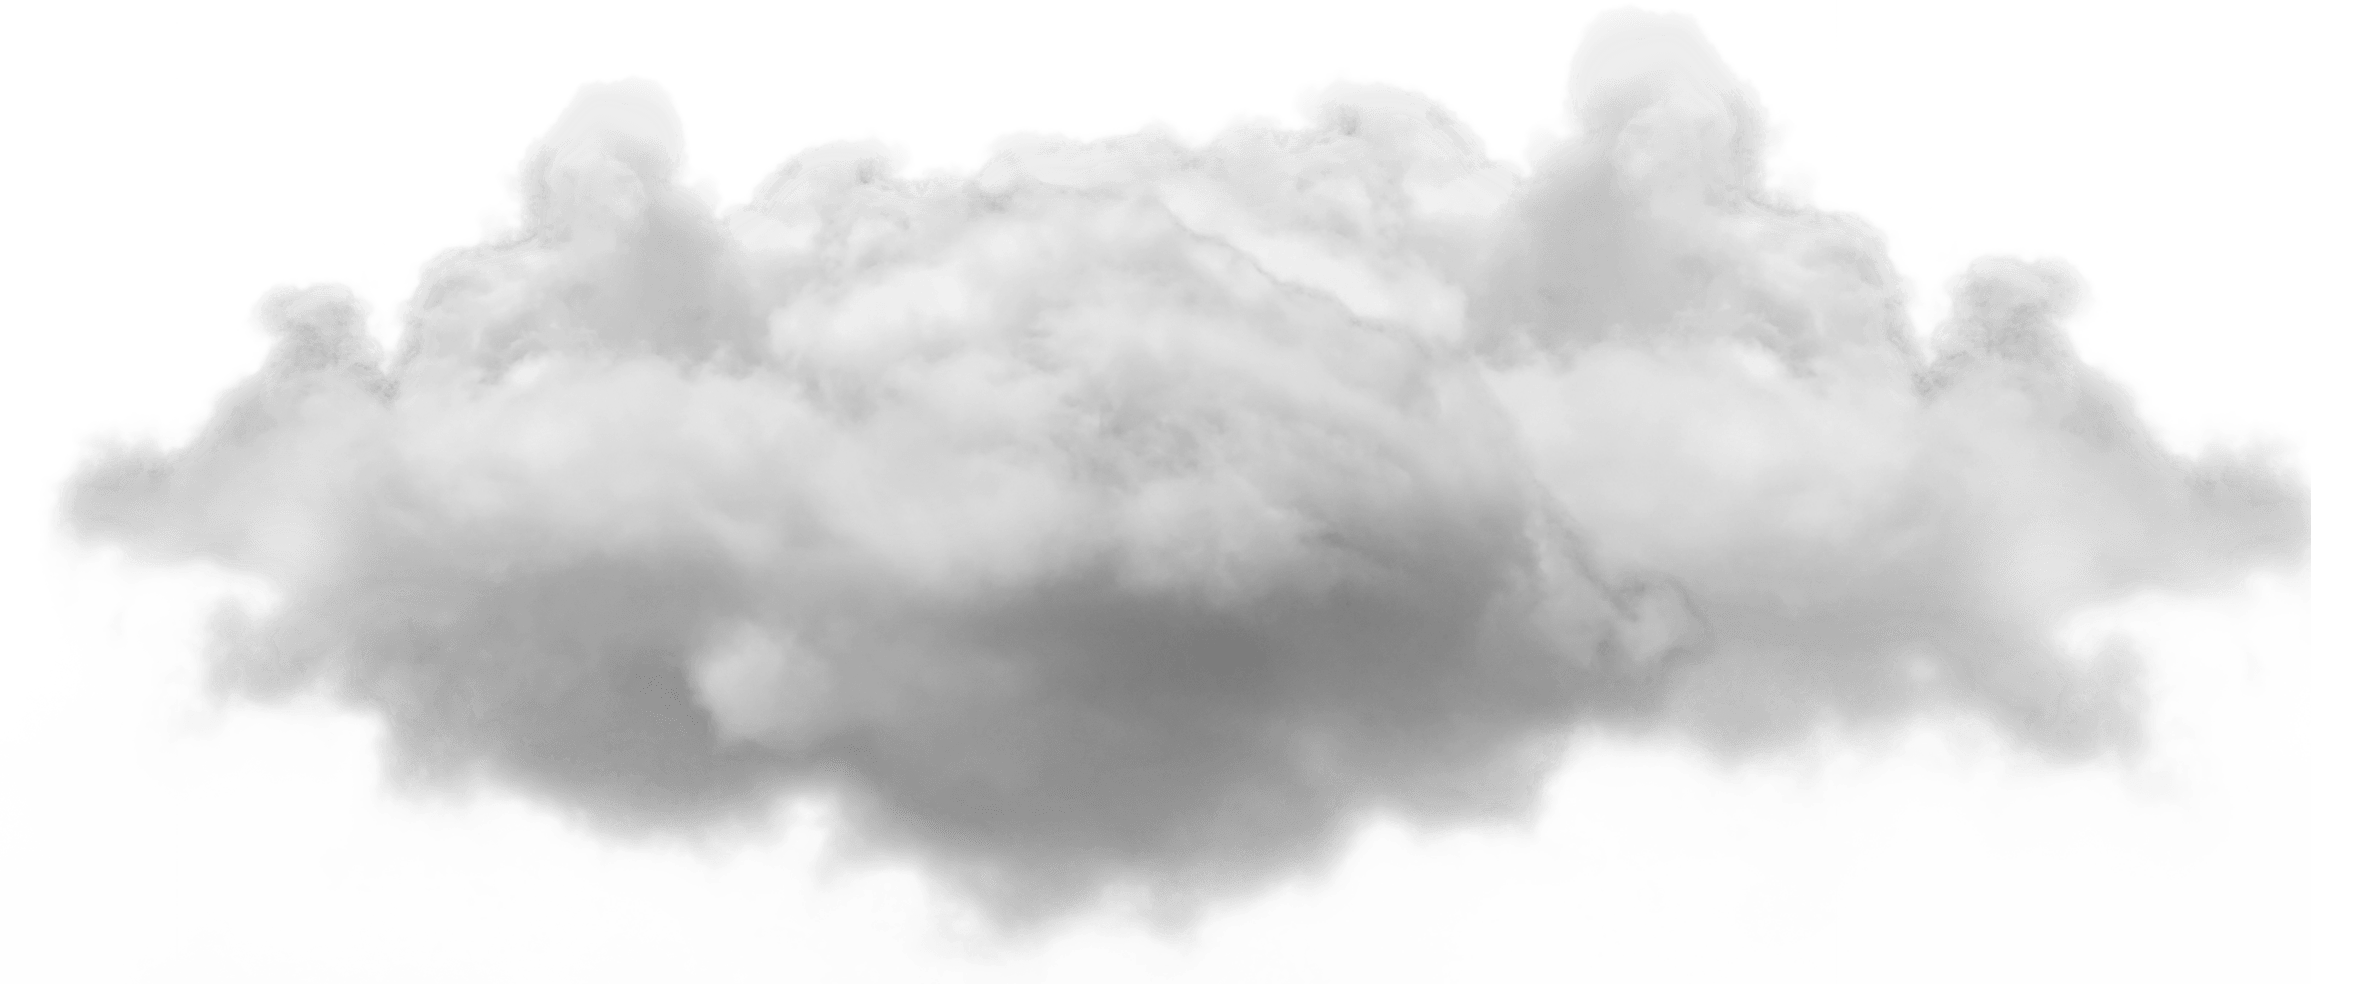 Clouds transparent png. Small single cloud image